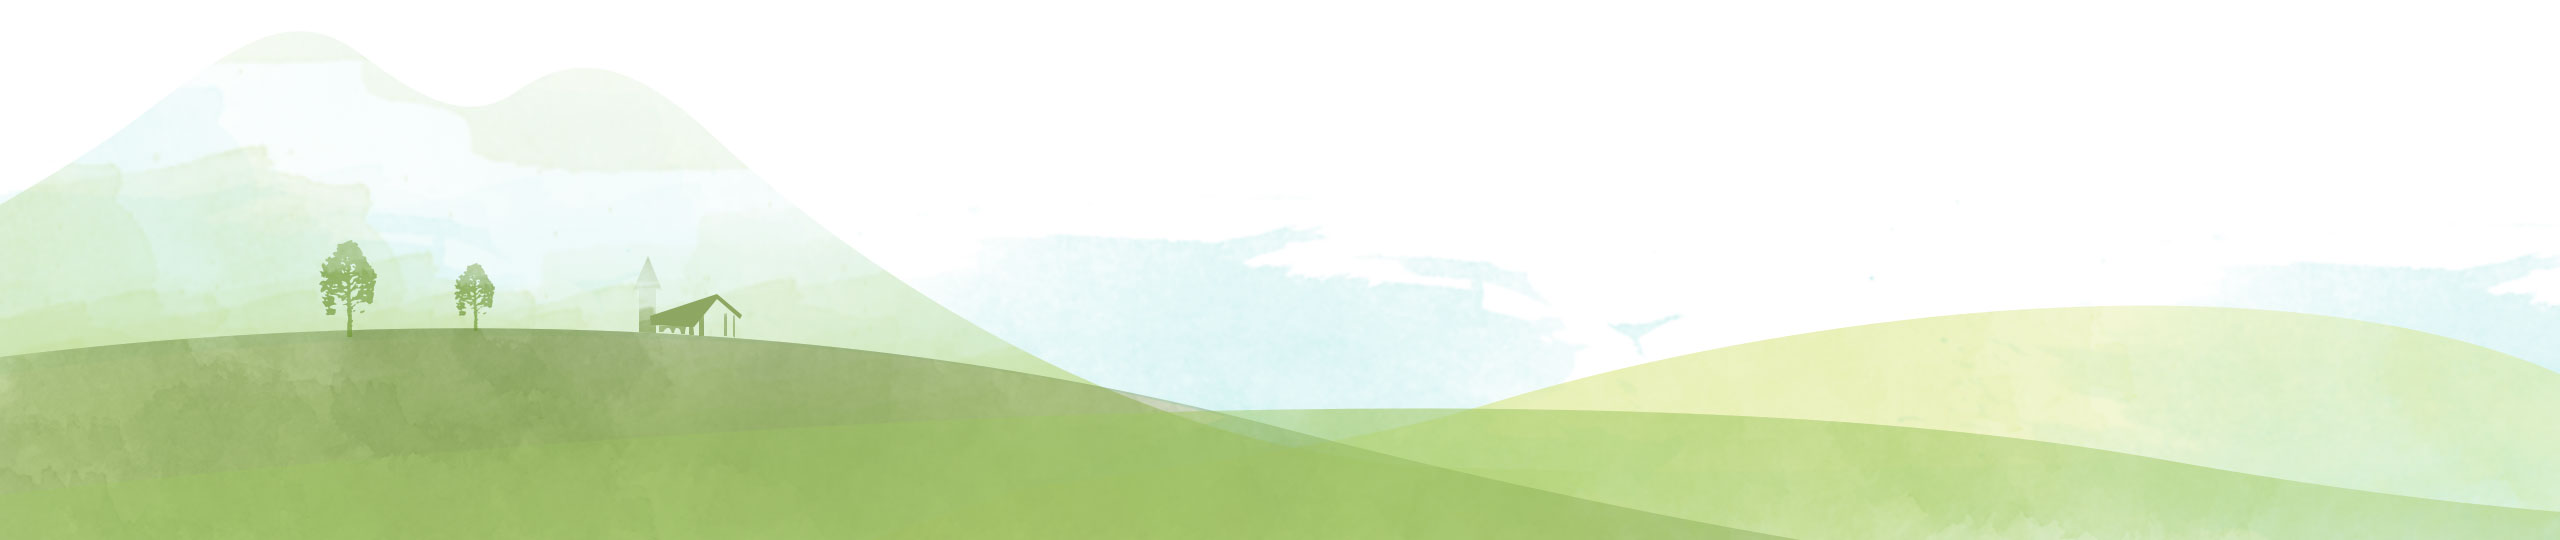 Drawing of the hillside green